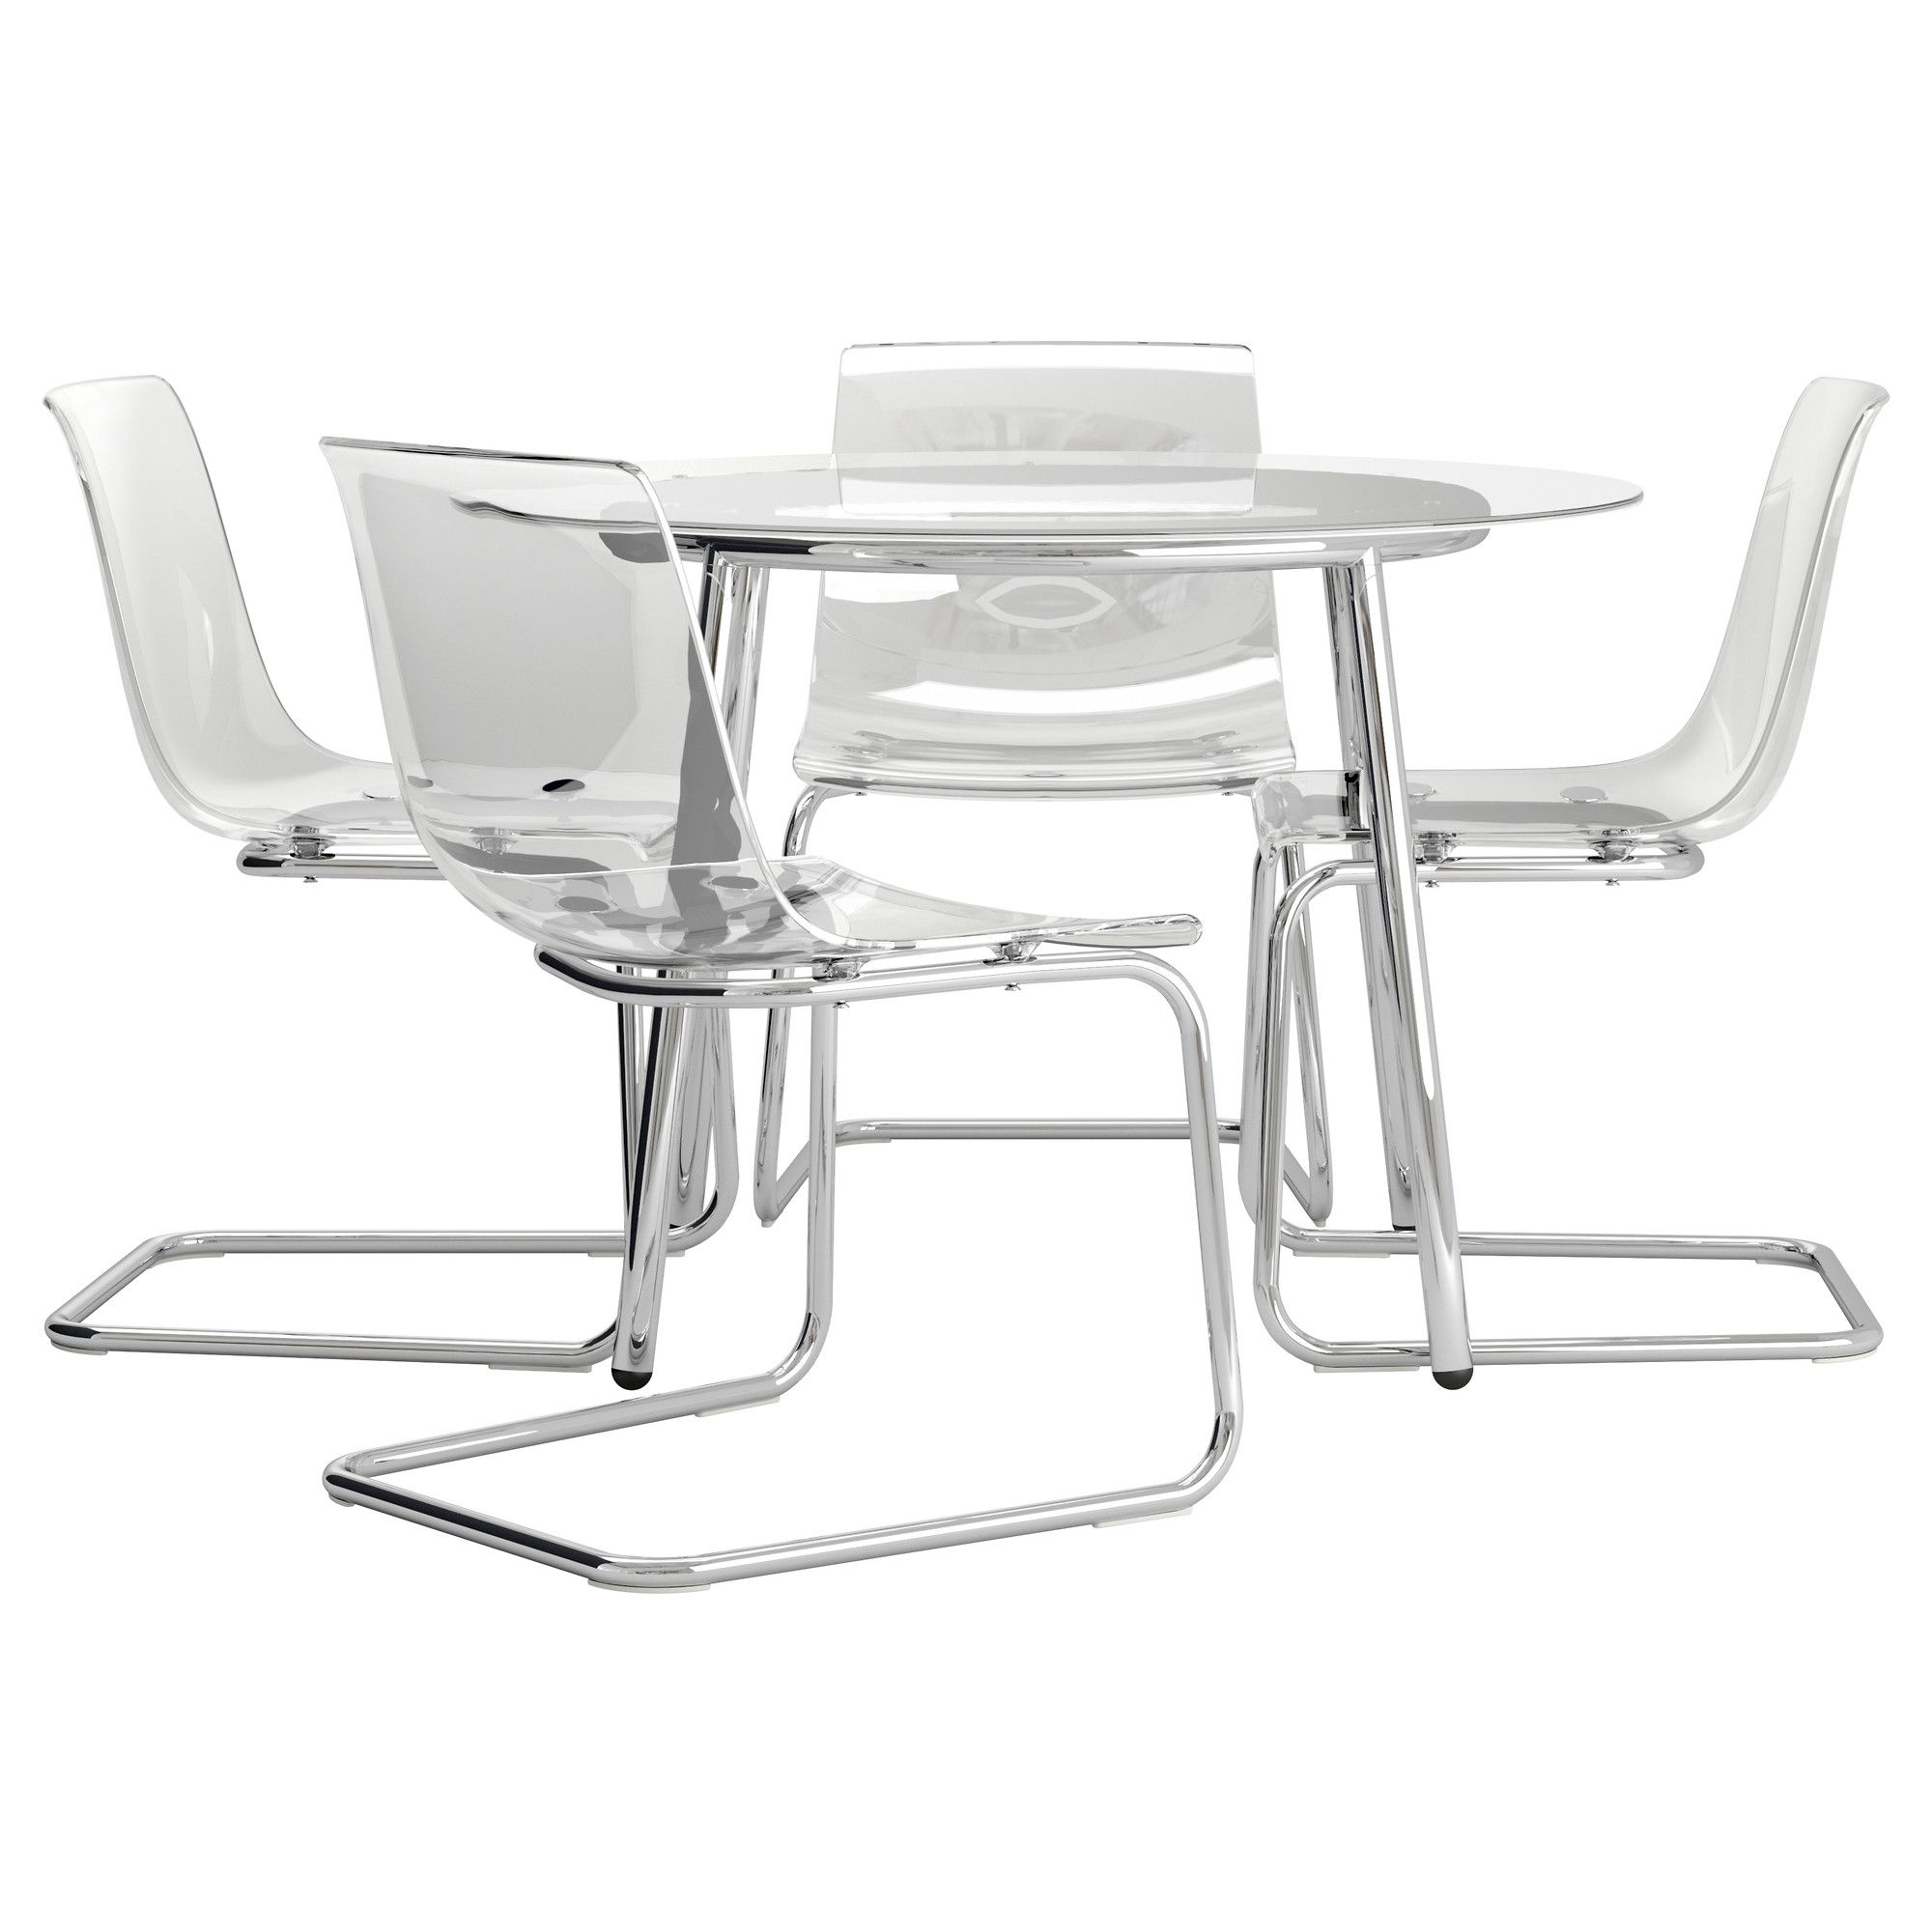 SALMI TOBIAS Table And 4 Chairs